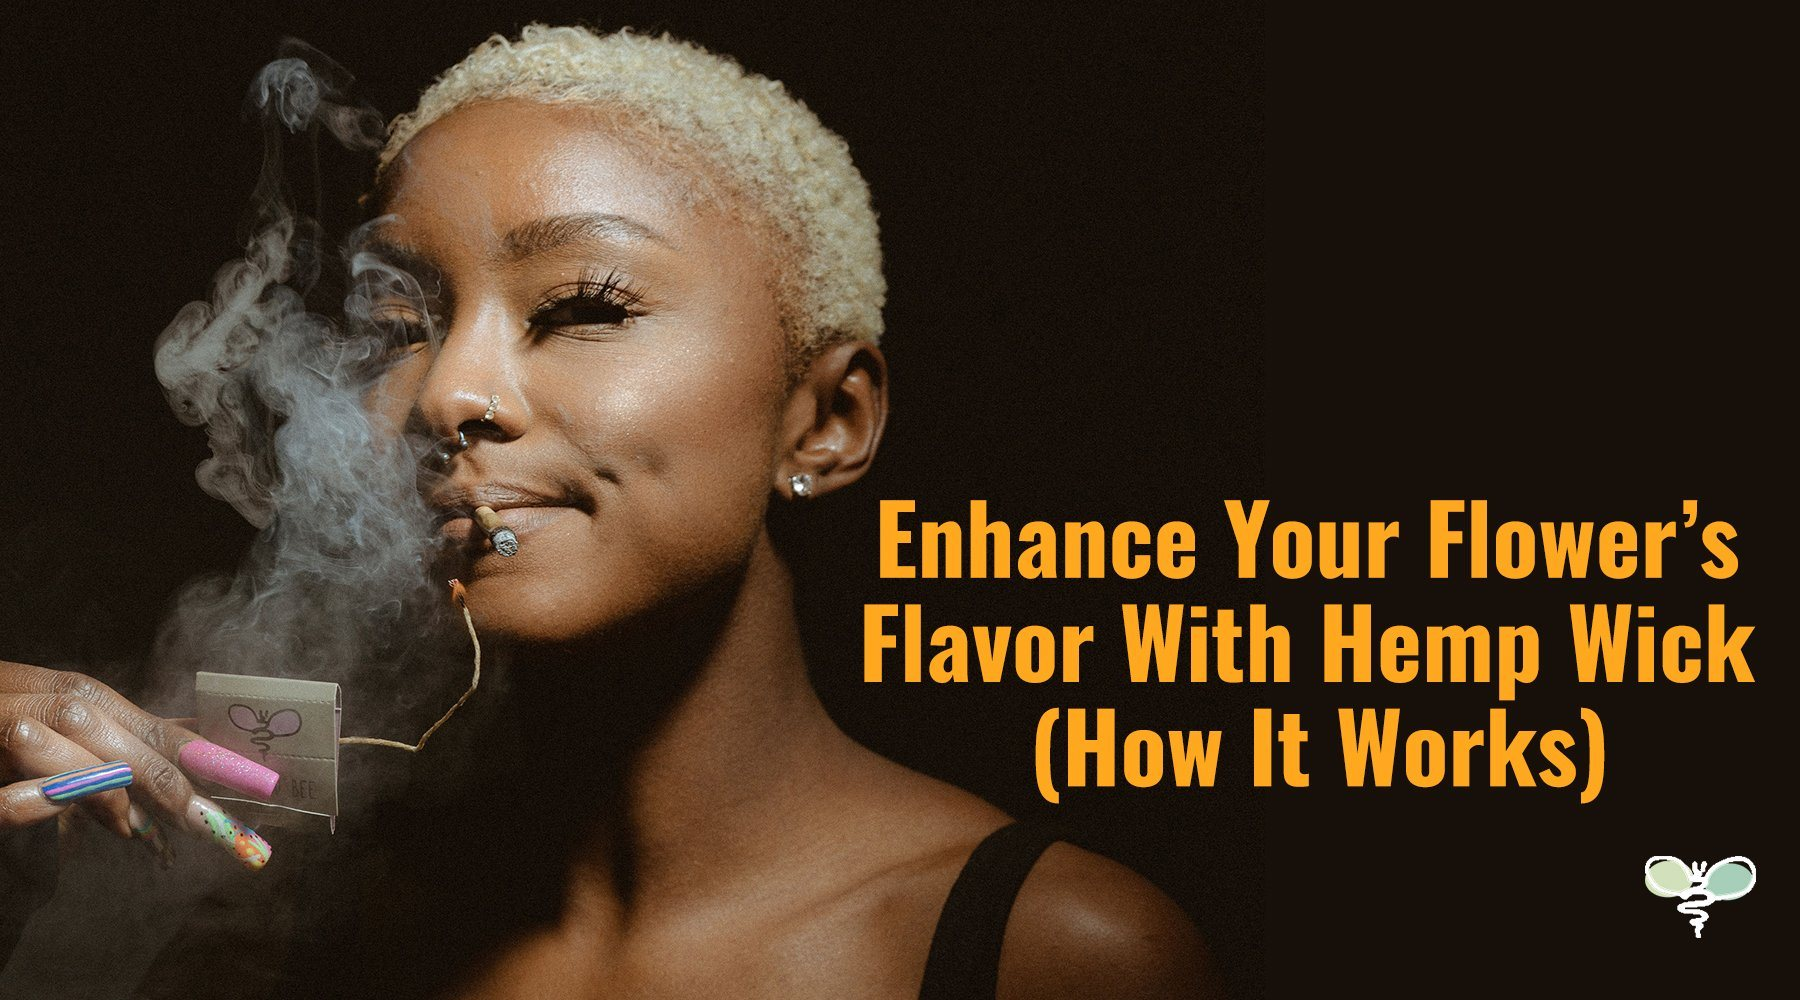 Enhance Your Flower's Flavor with Hemp Wick